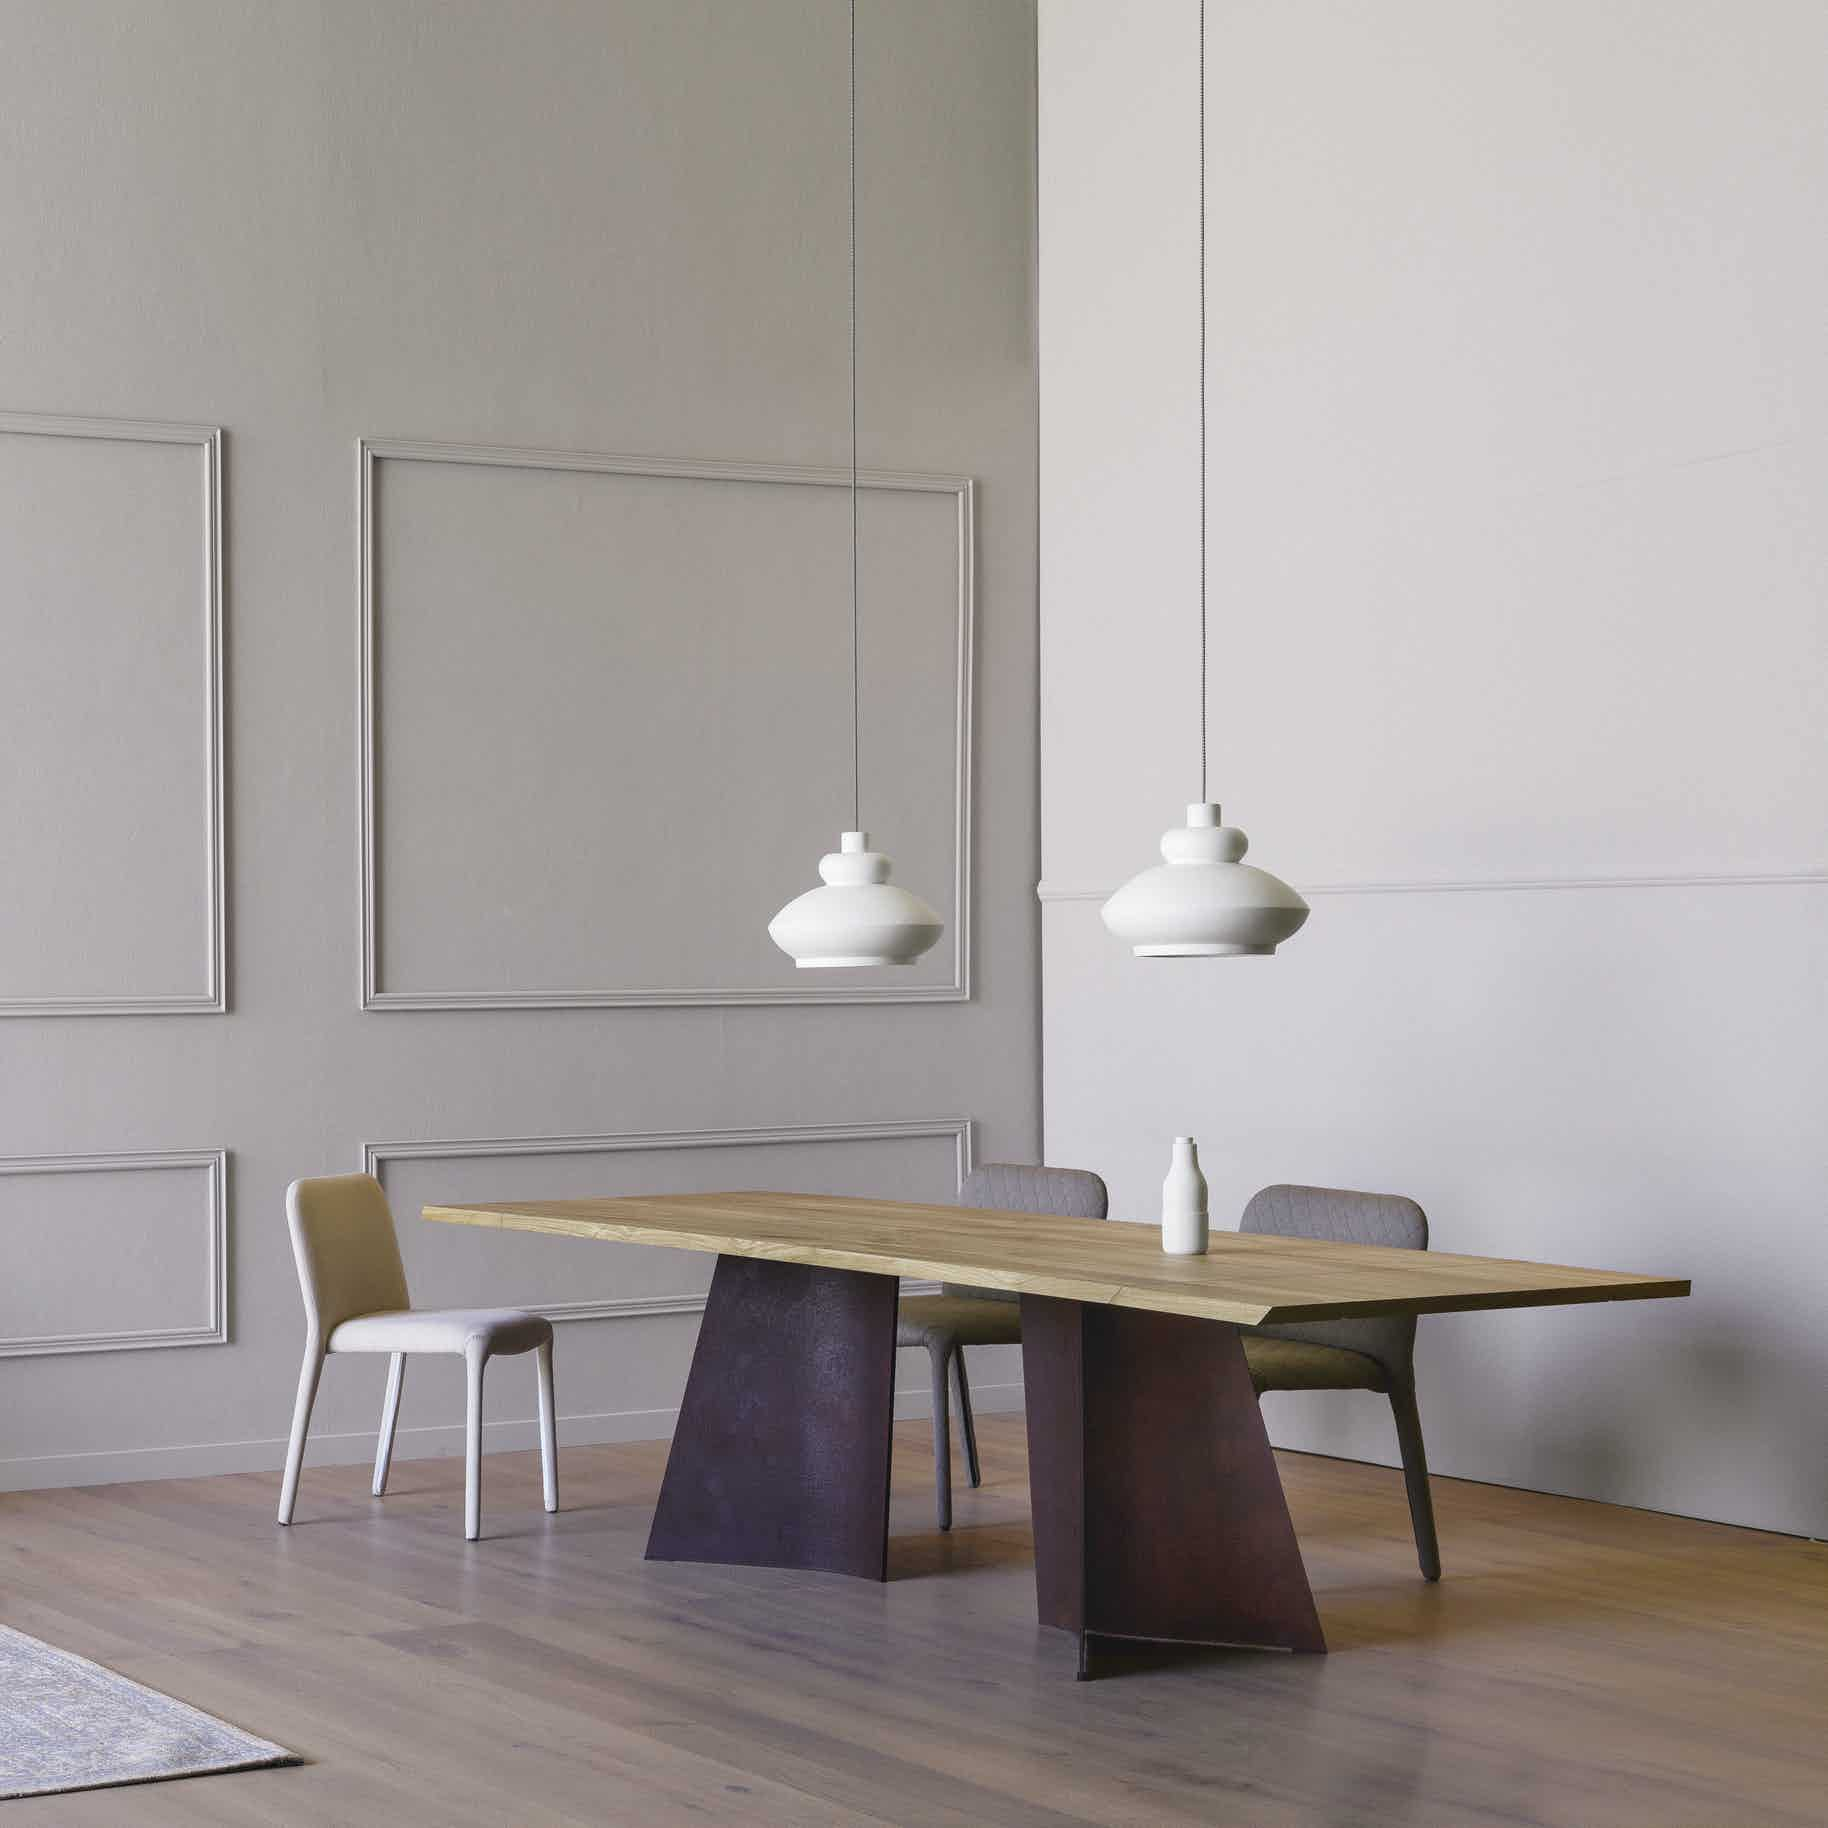 Miniforms Maggese Table Angle Haute Living